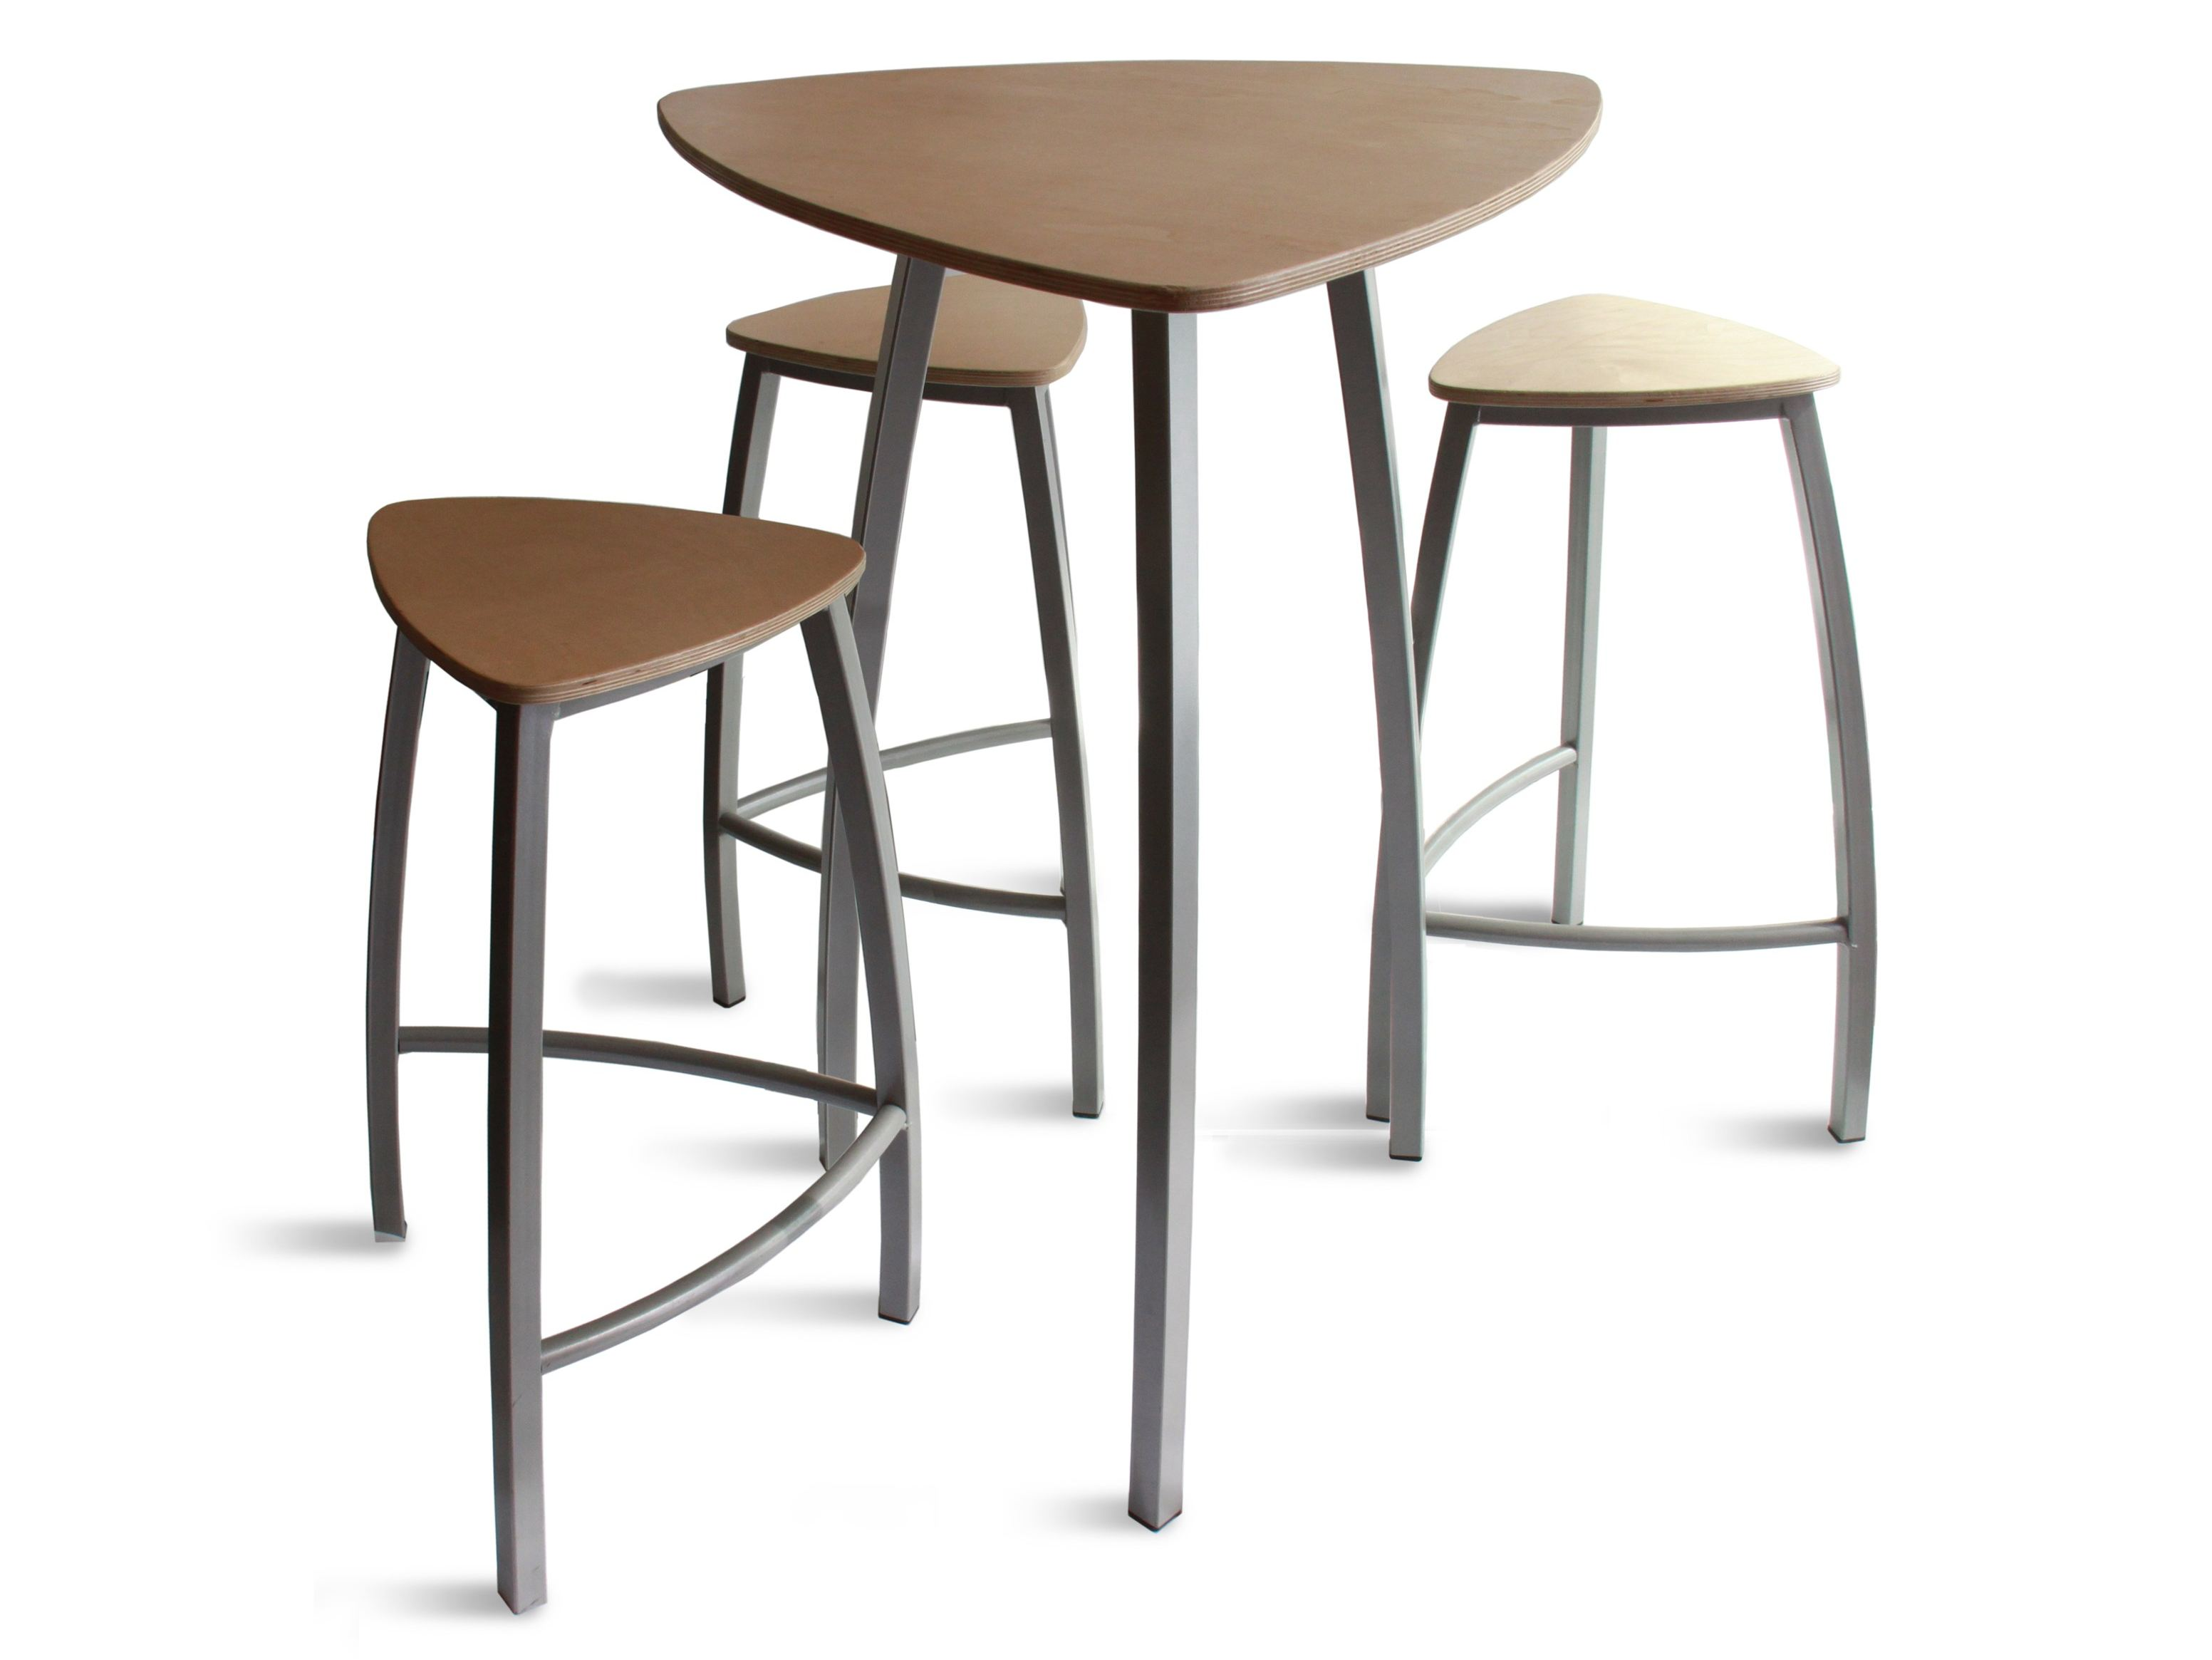 delta high table by collection maison design arielle d